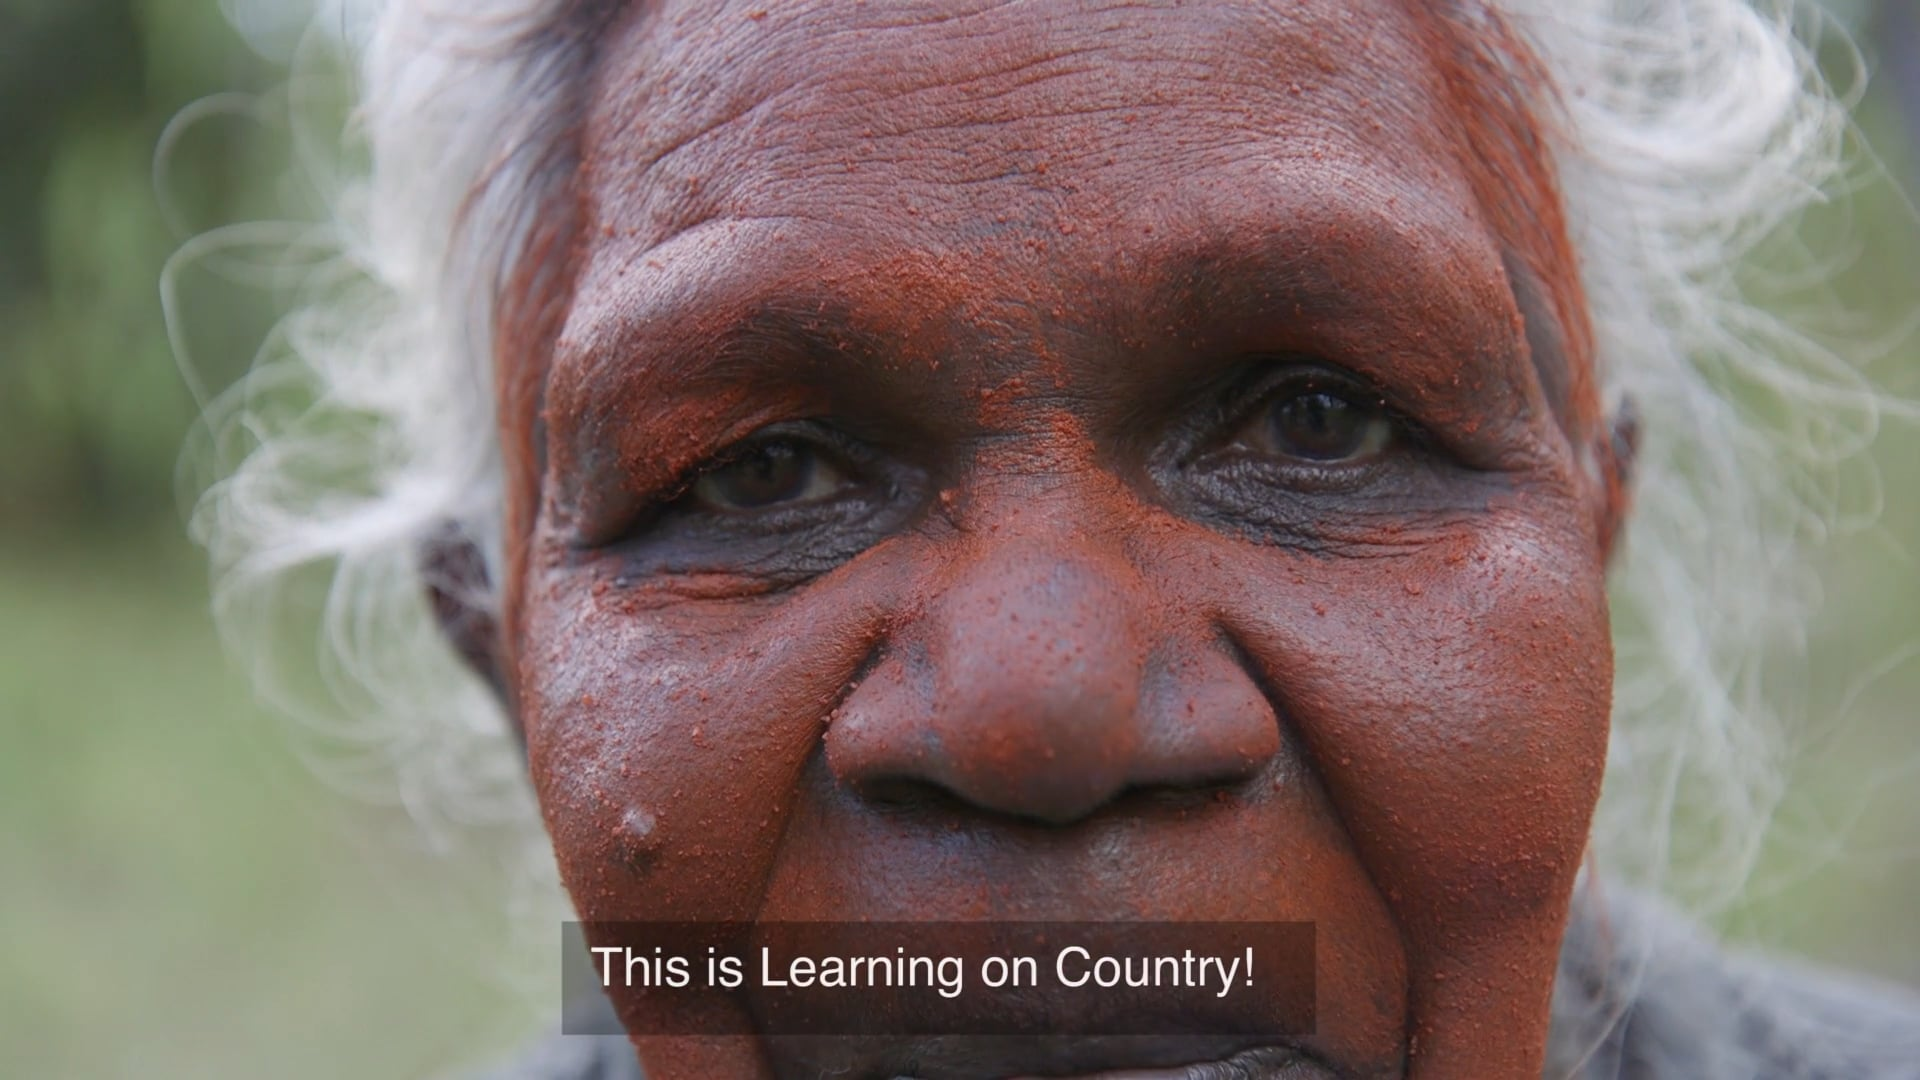 Yirrkala Learning on Country Promo